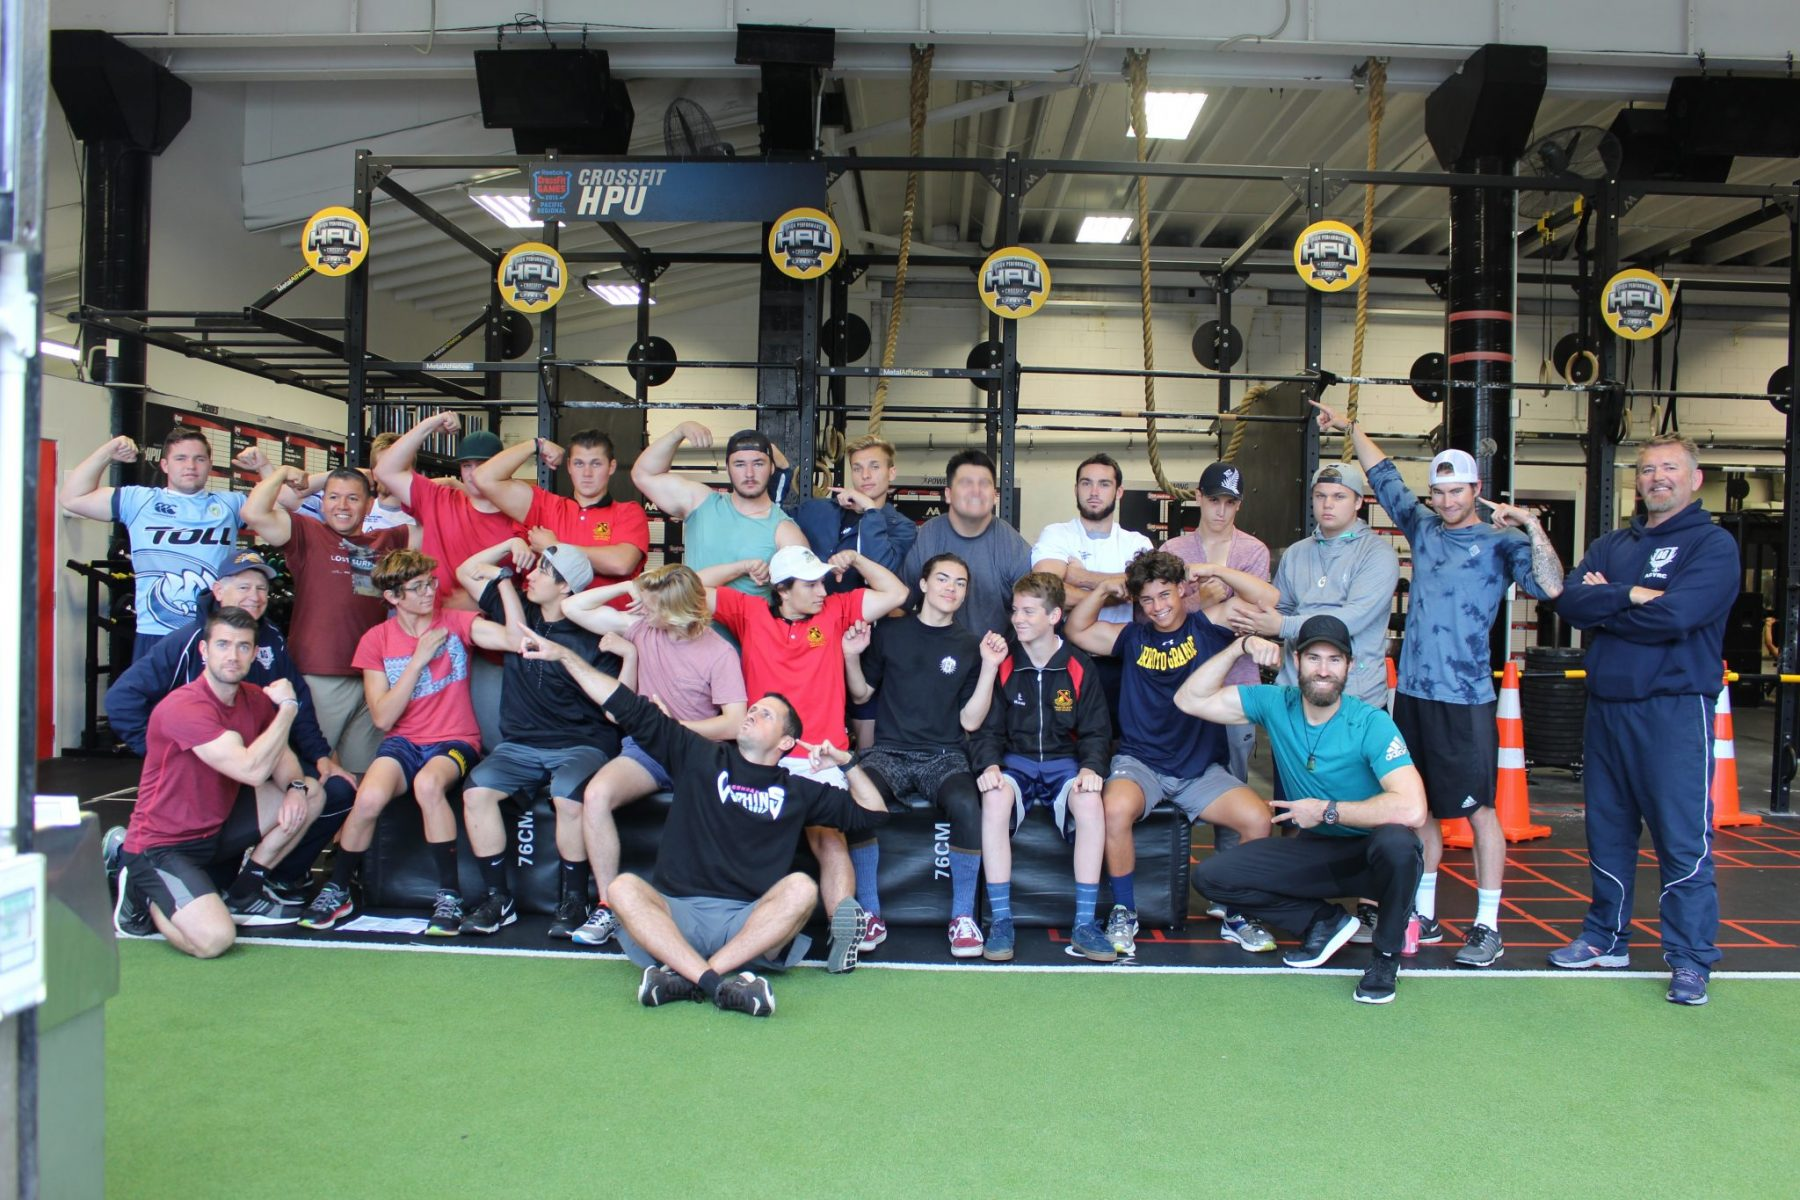 Rugby Tours New Zealand gym team photo semi final